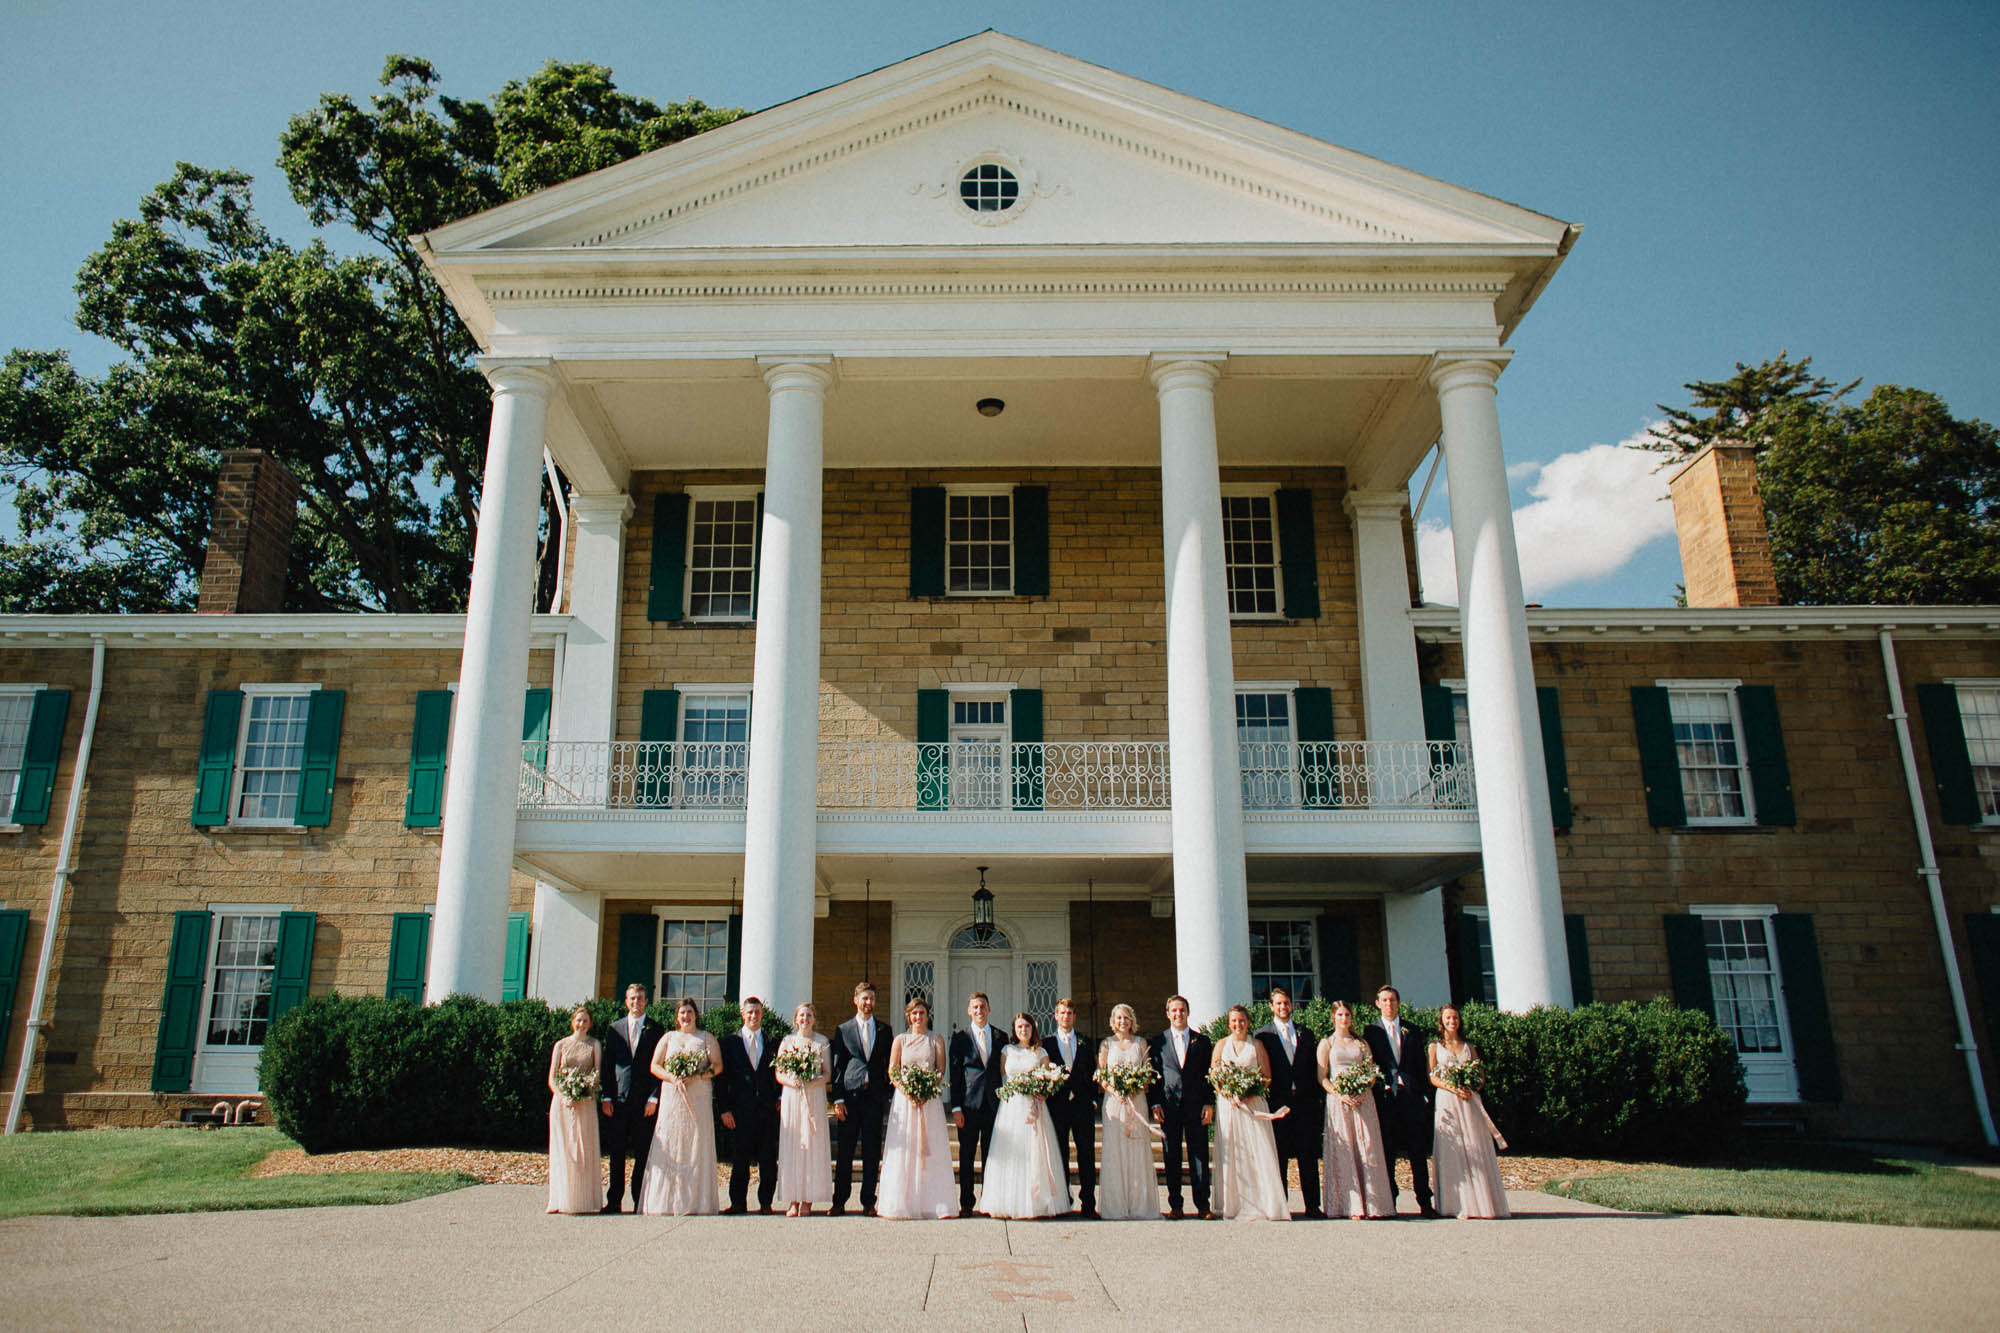 Bridal Party in Front of The Bryn Du Mansion